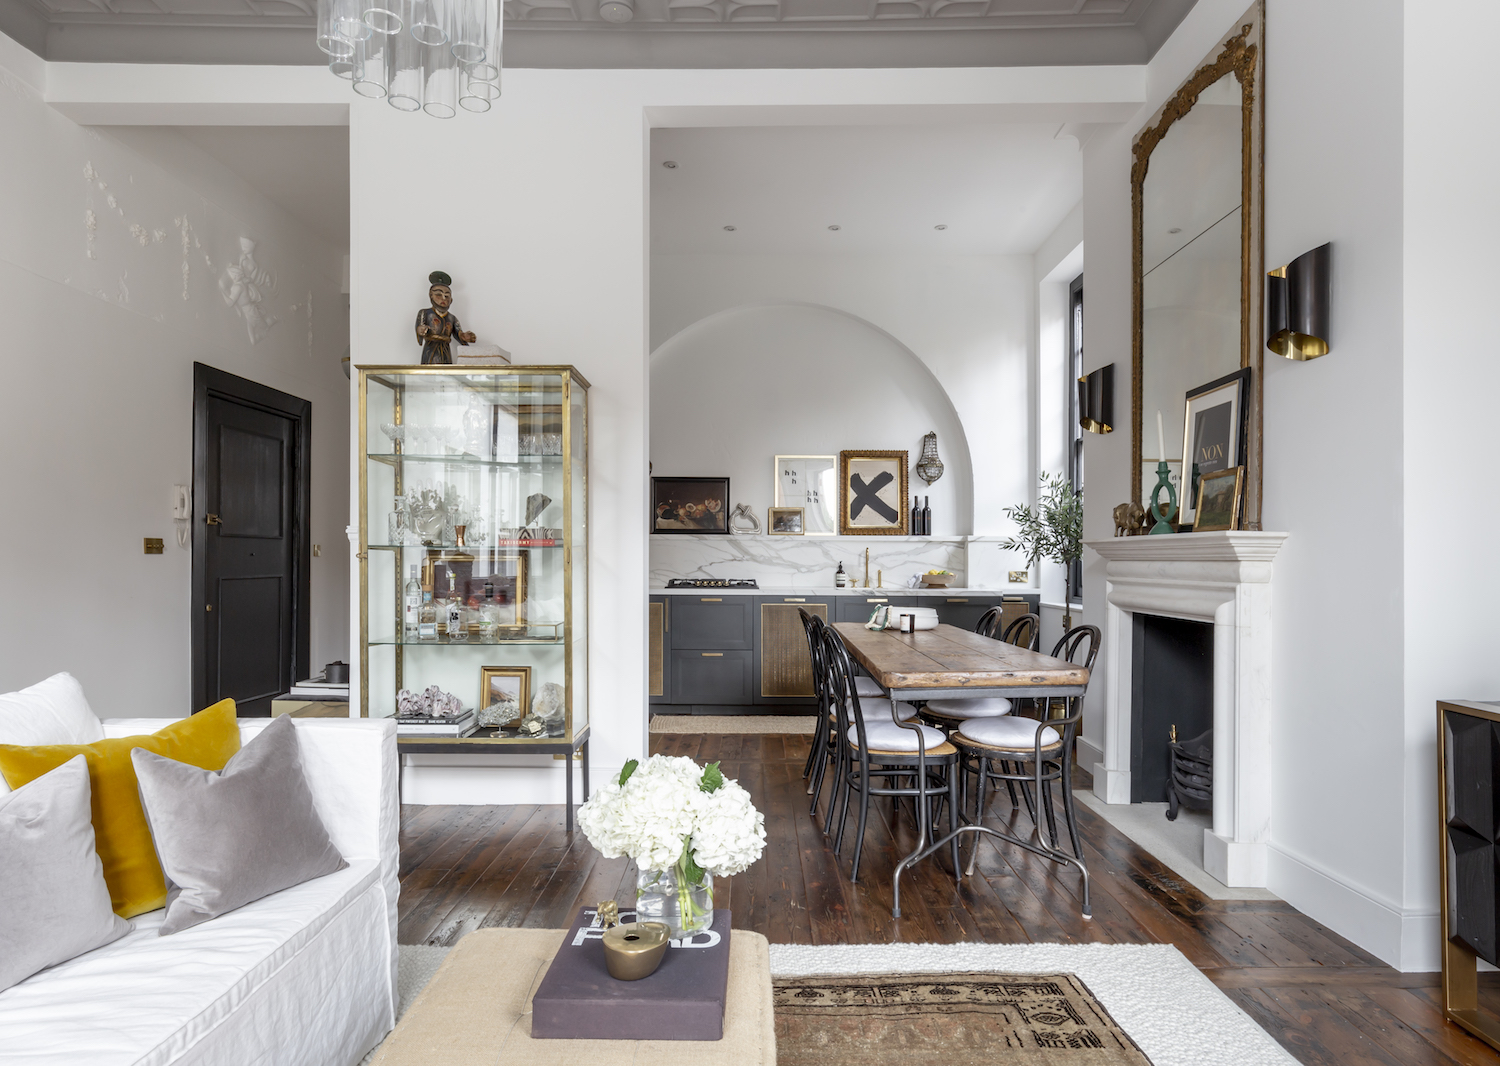 Explore A Grade II-listed Georgian Townhouse on London's Harley Street